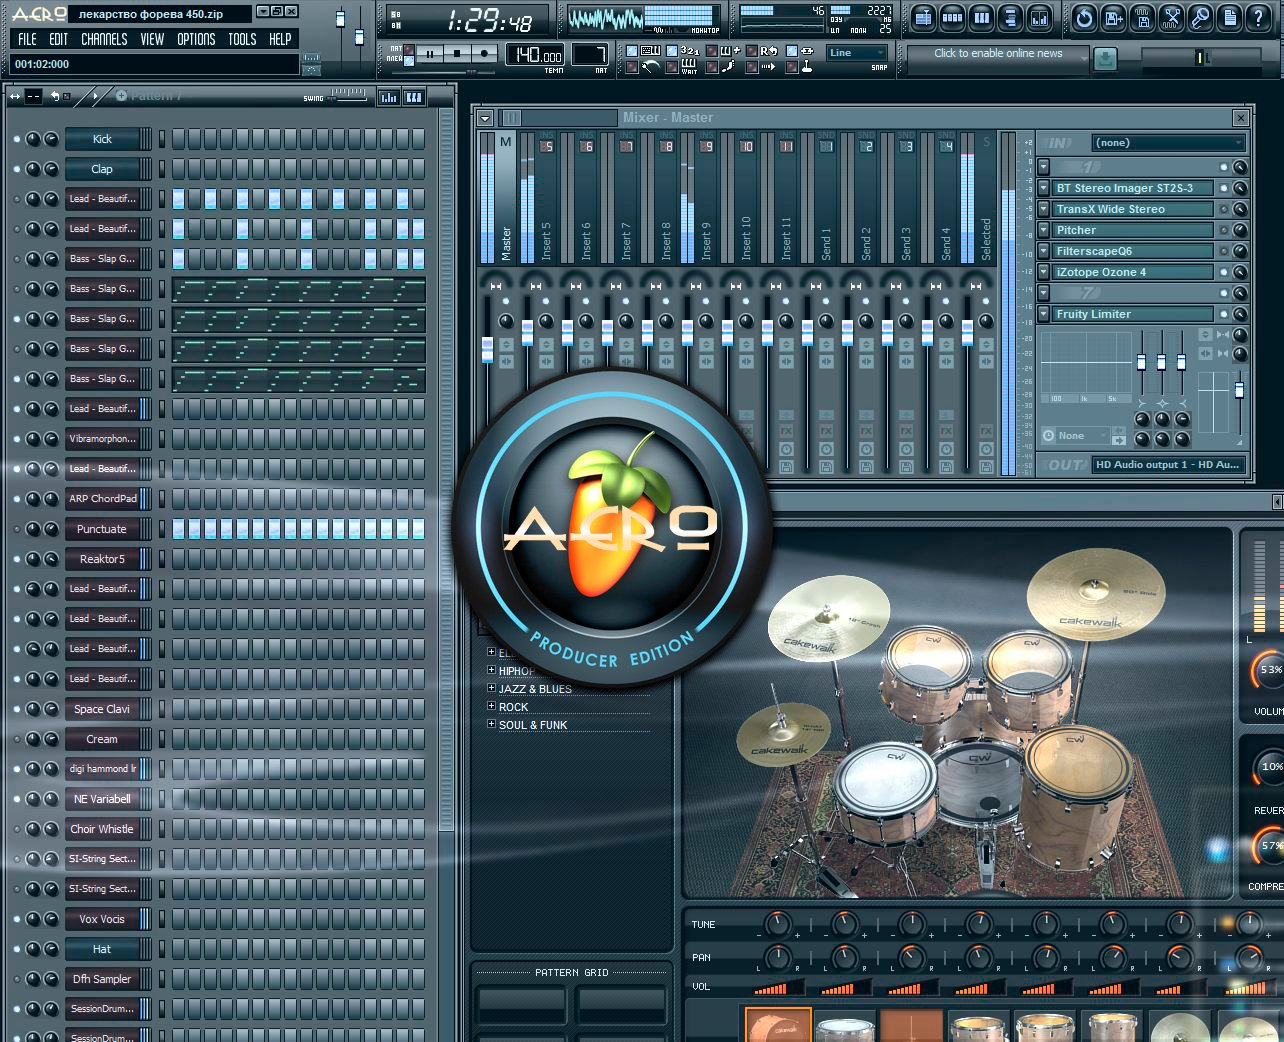 fl studio 10 producer edition free full download